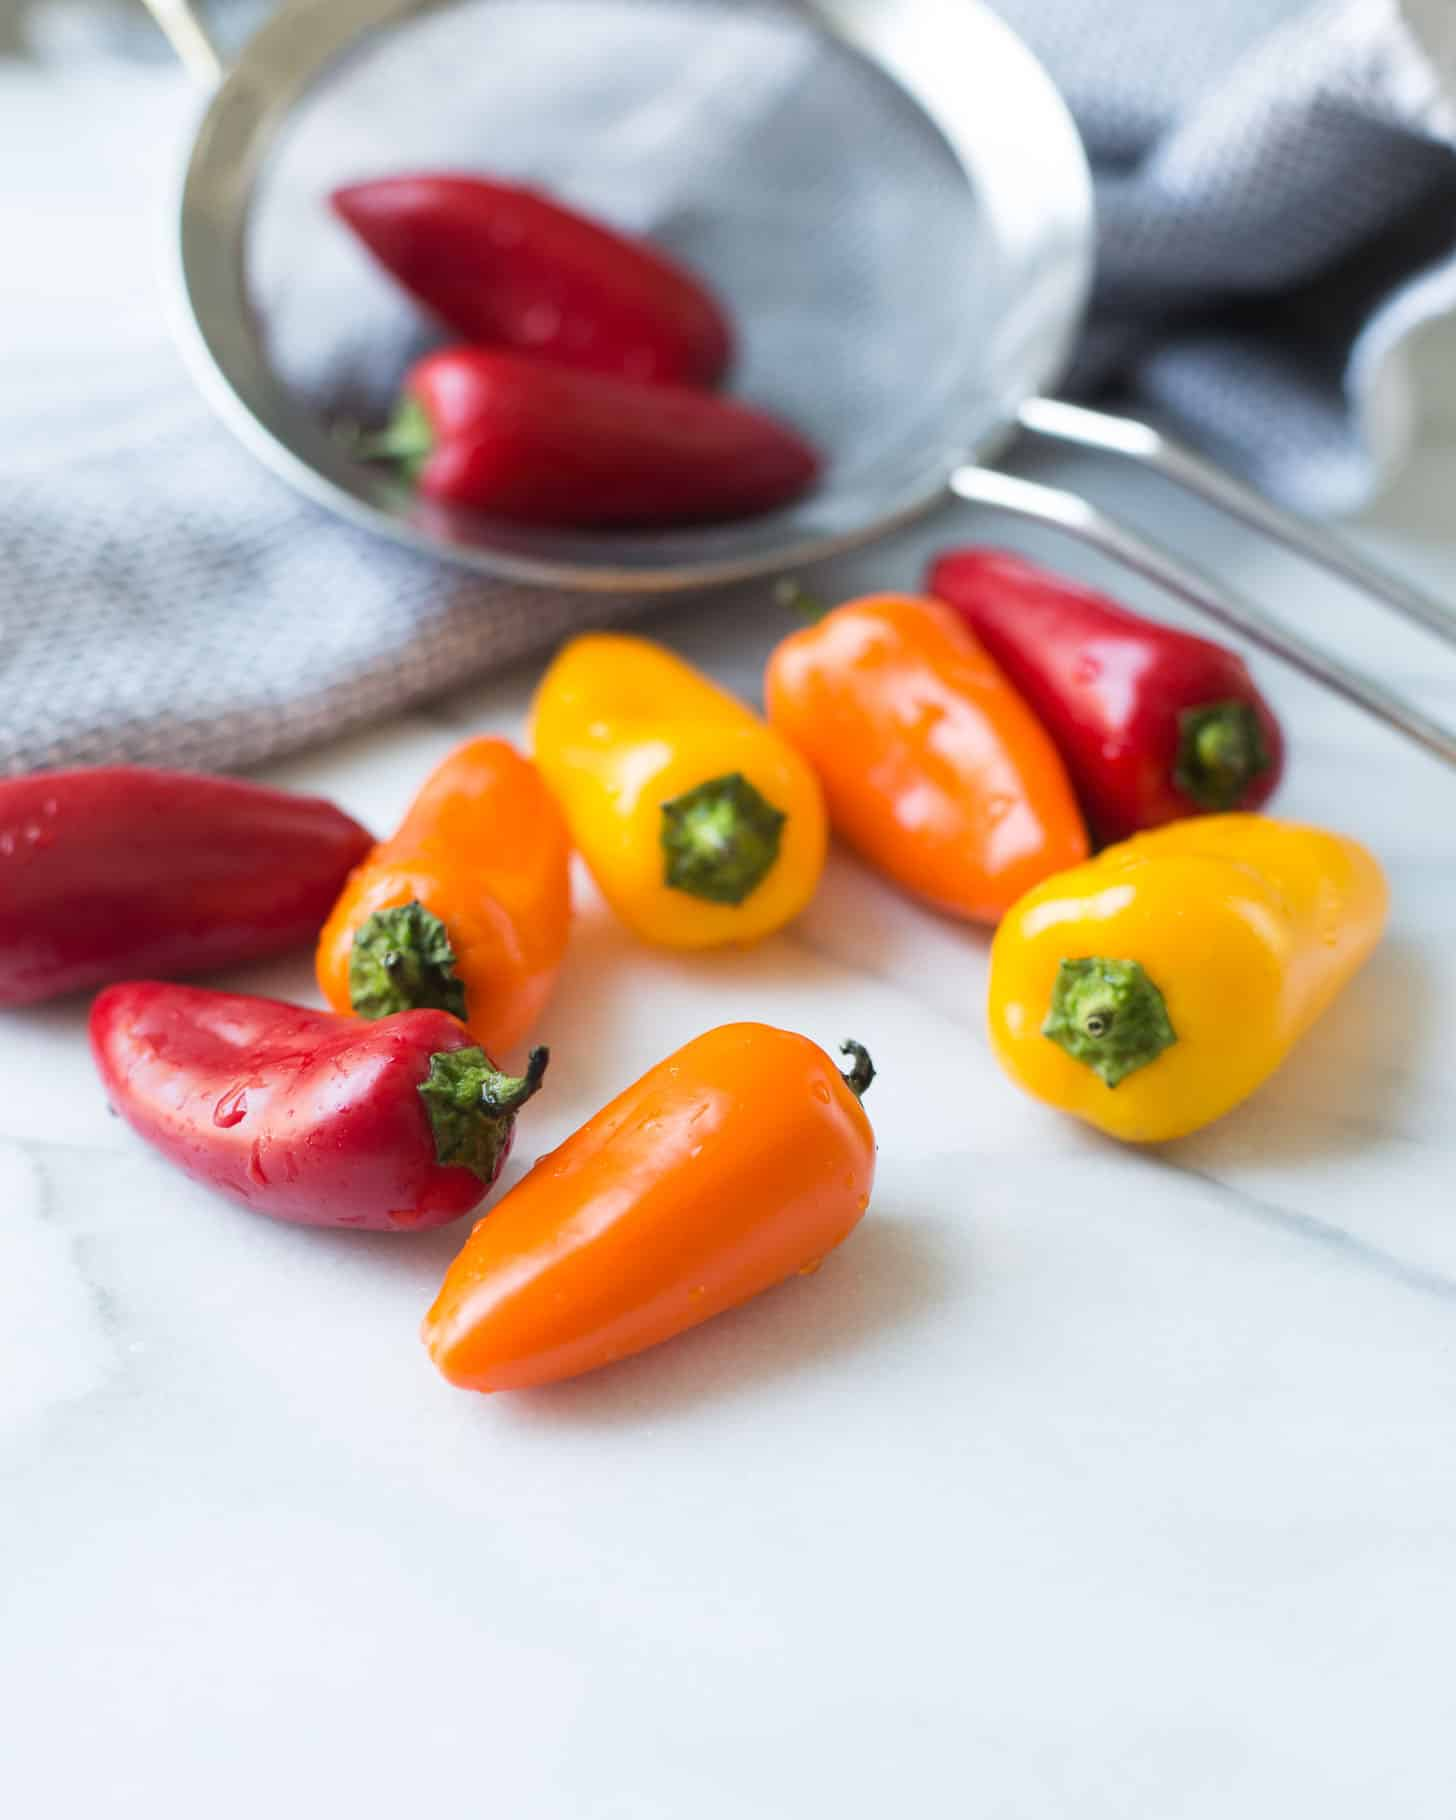 red, yellow and orange sweet peppers